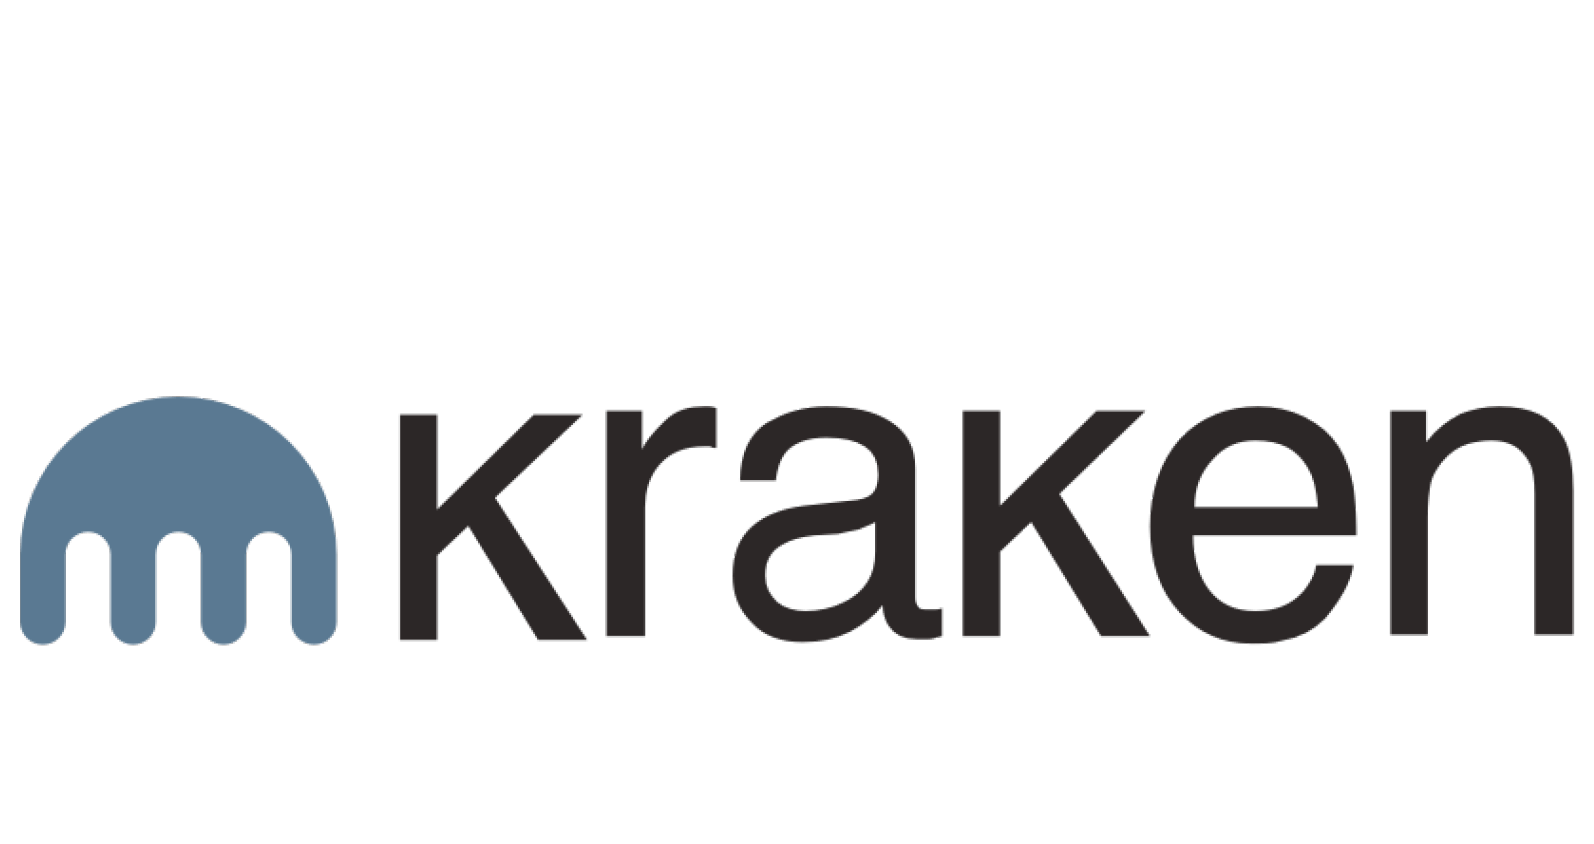 The Kraken cryptocurrency exchange